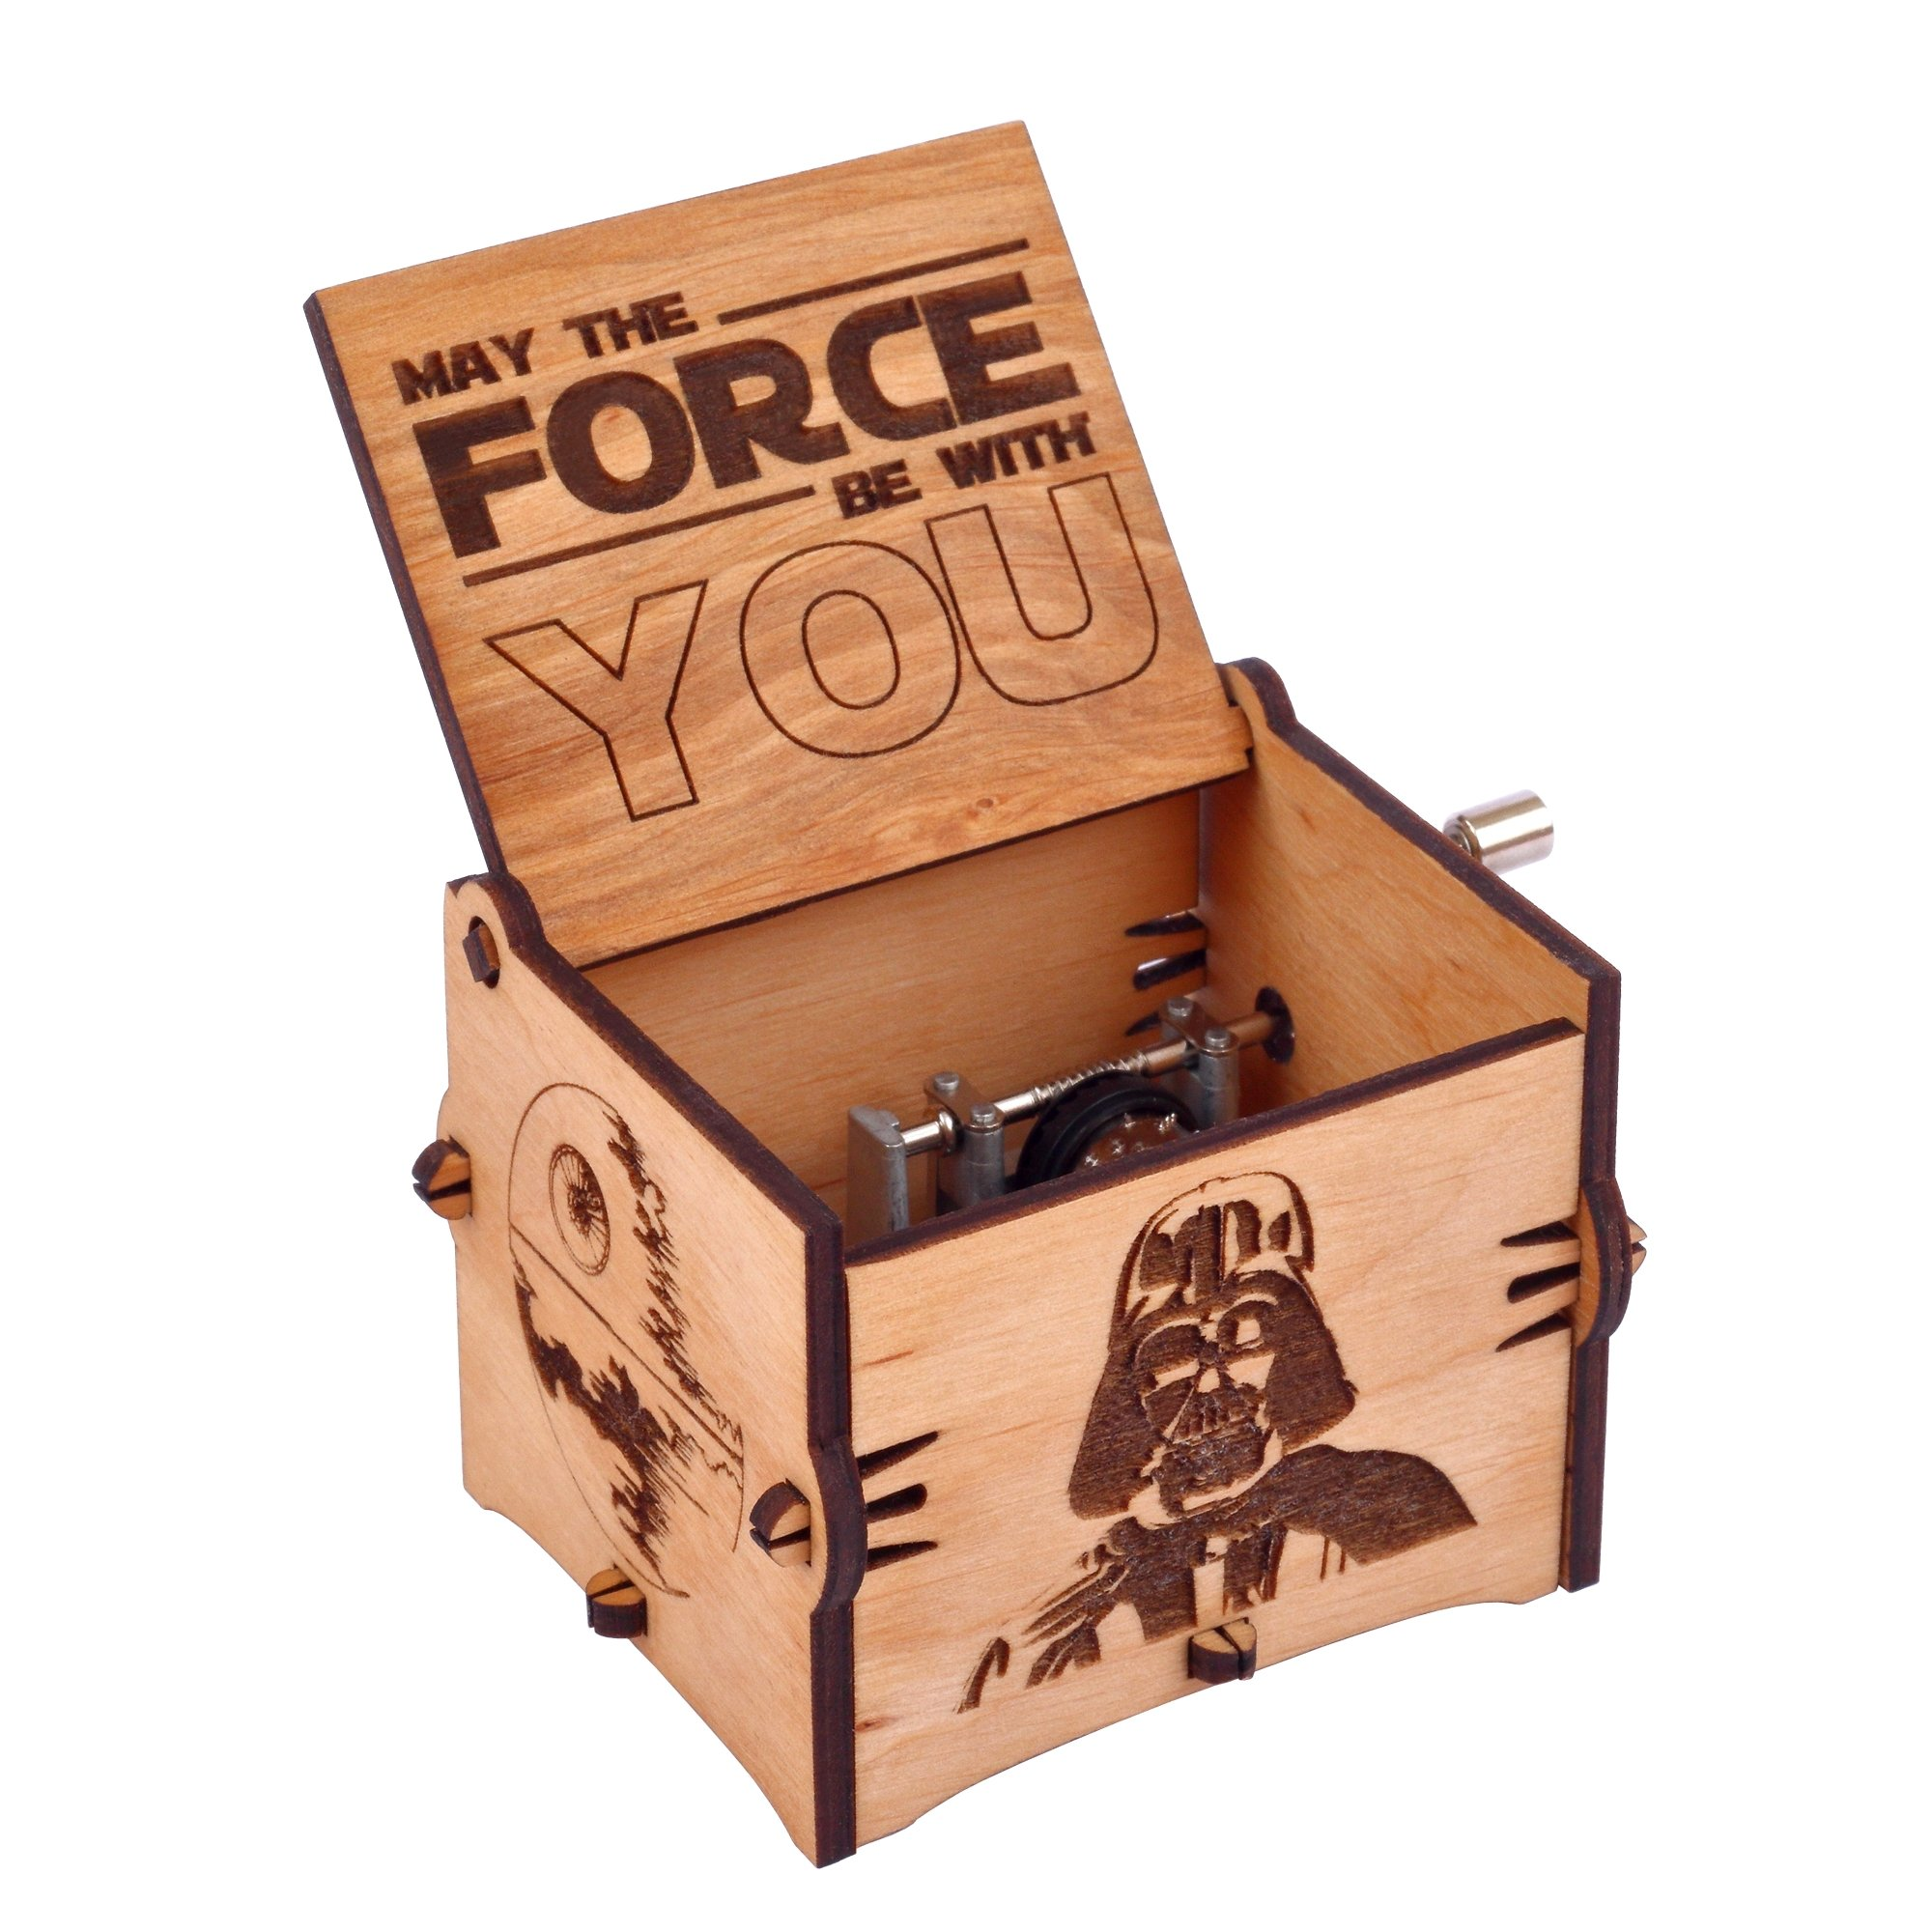 Enjoy The Wood Star Wars Music Box Wooden Star Wars Fans Custom Gift for Boyfriend Gift for Brother by